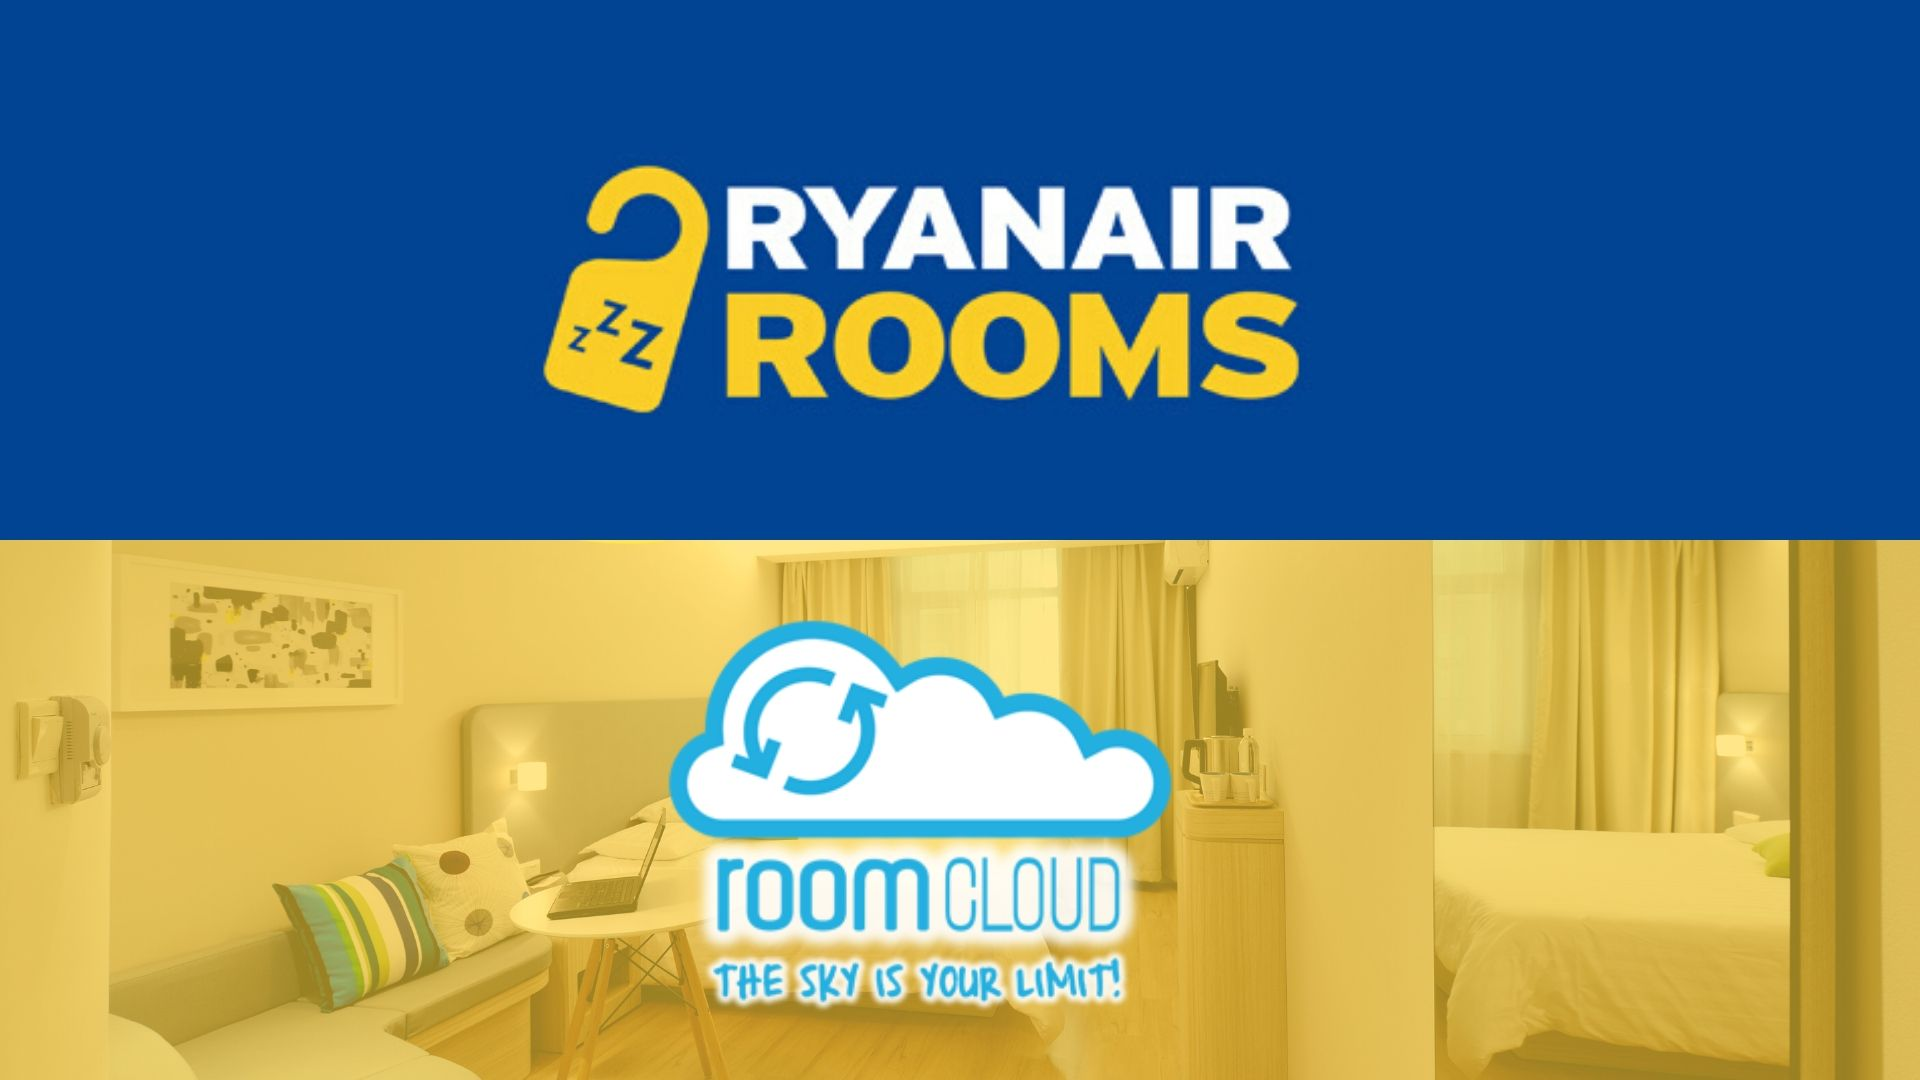 Roomcloud è integrato con Ryanair Rooms!